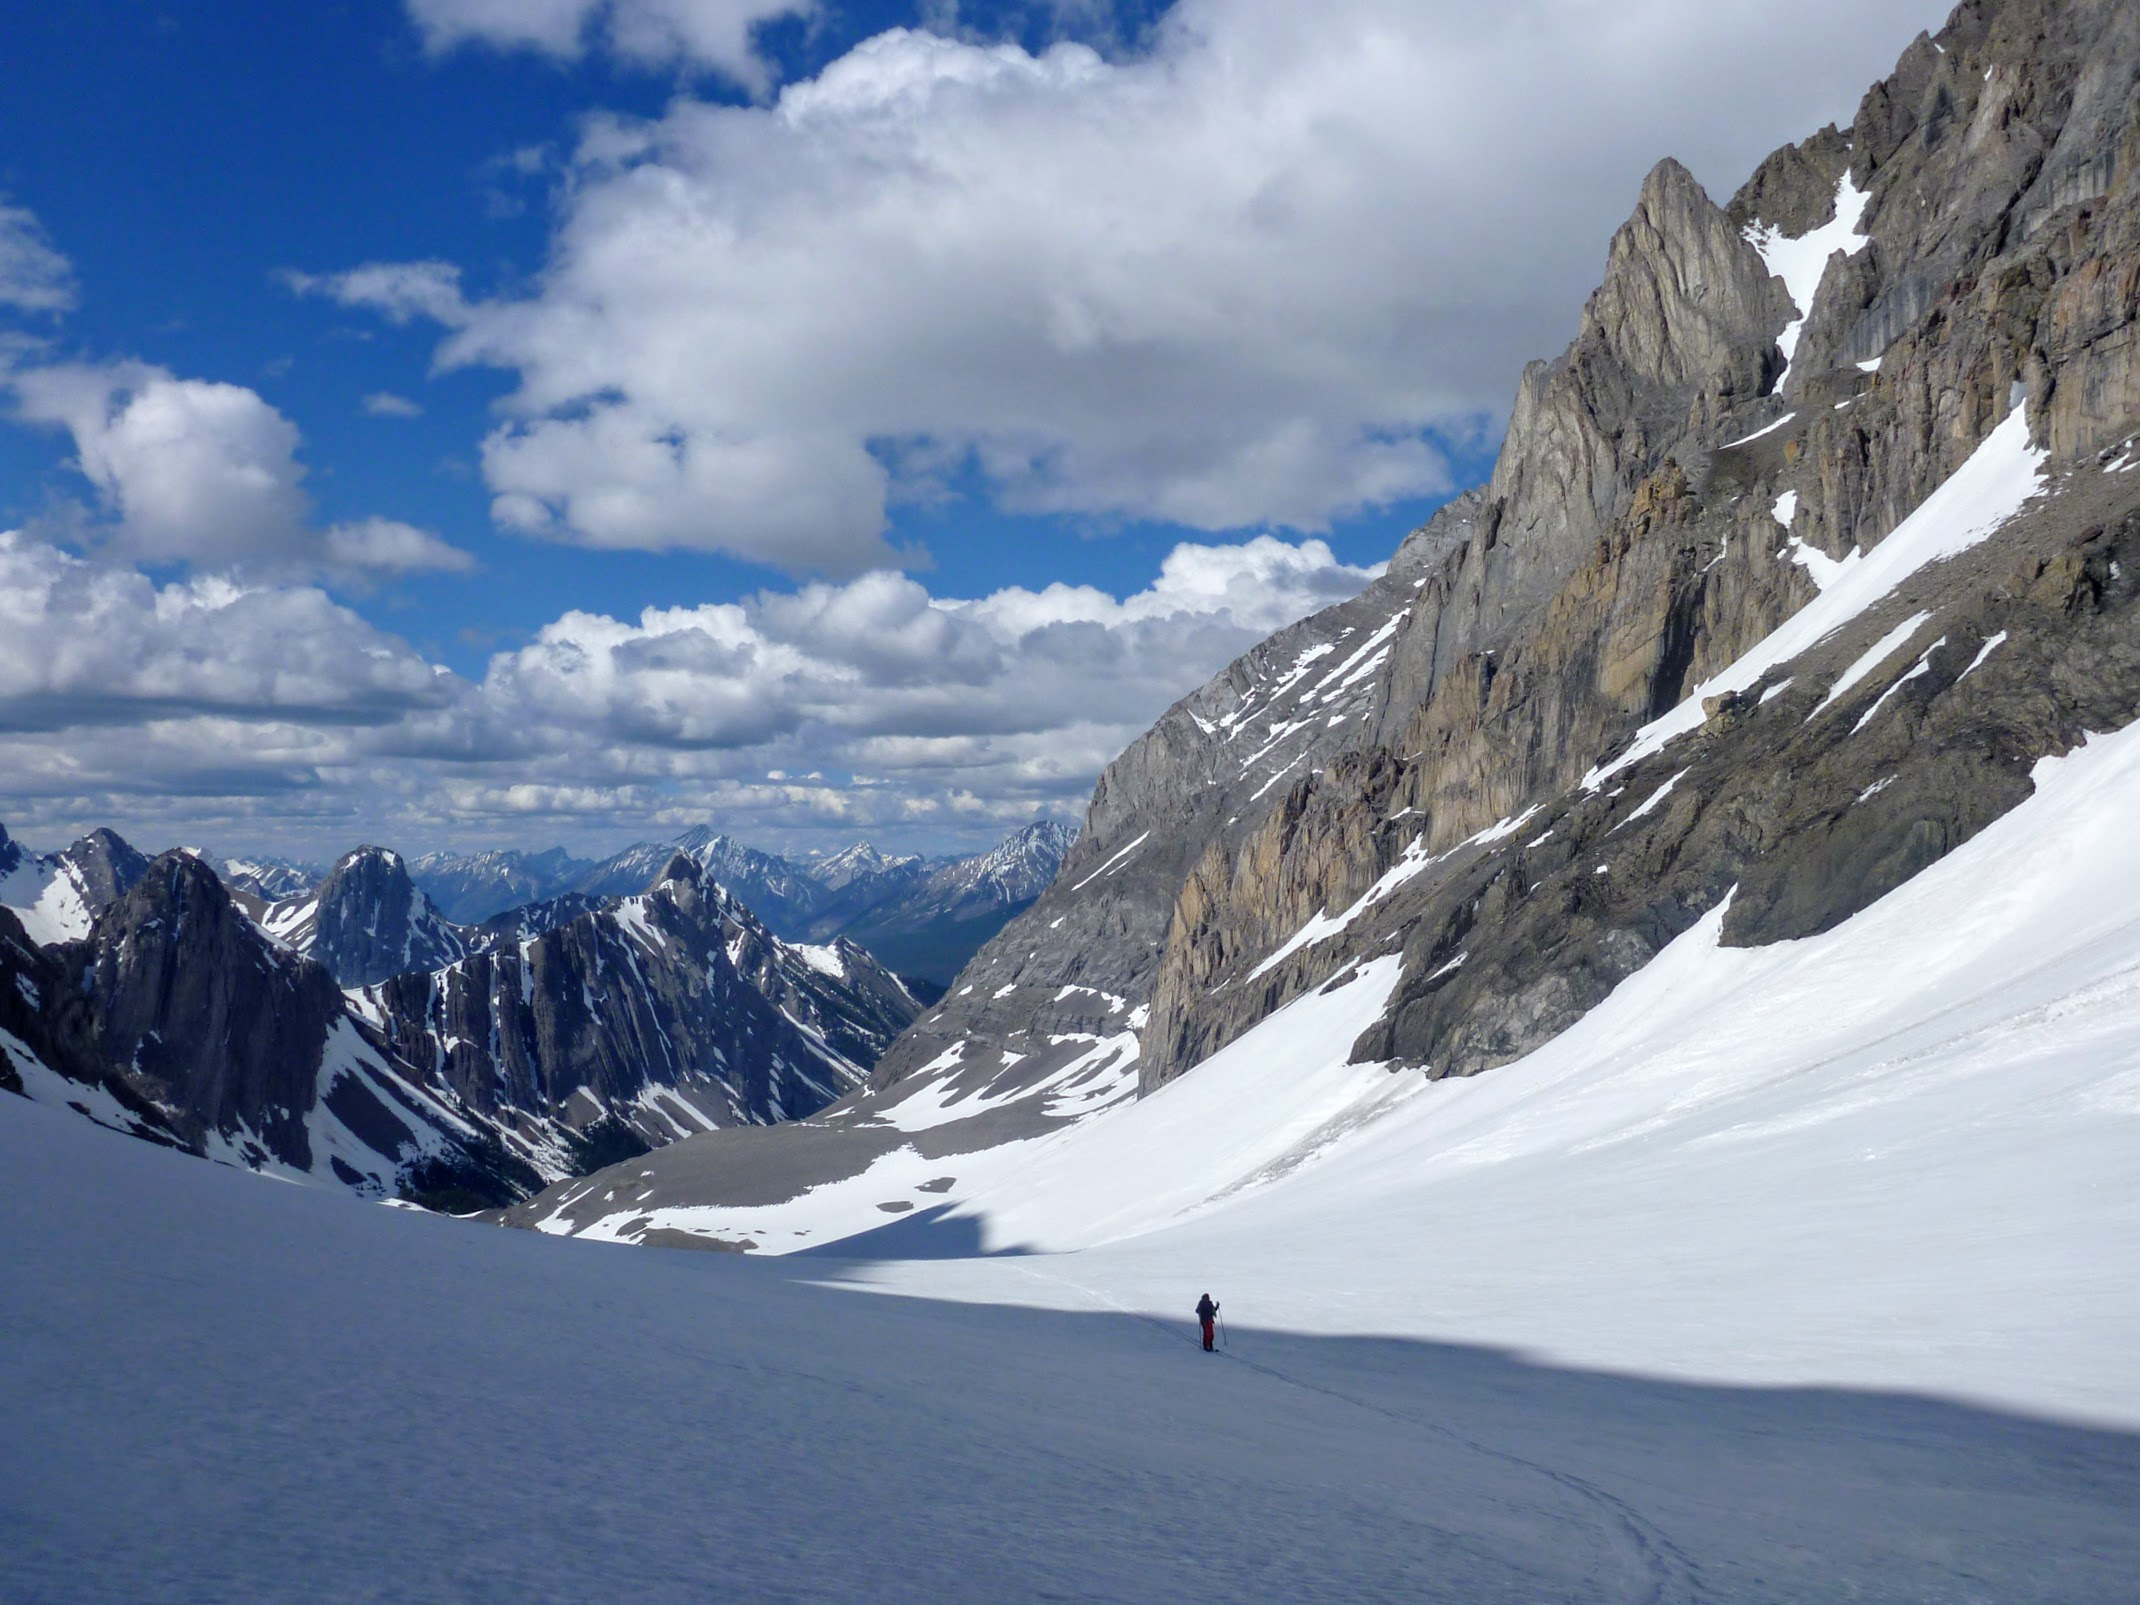 Skiing up the French Glacier